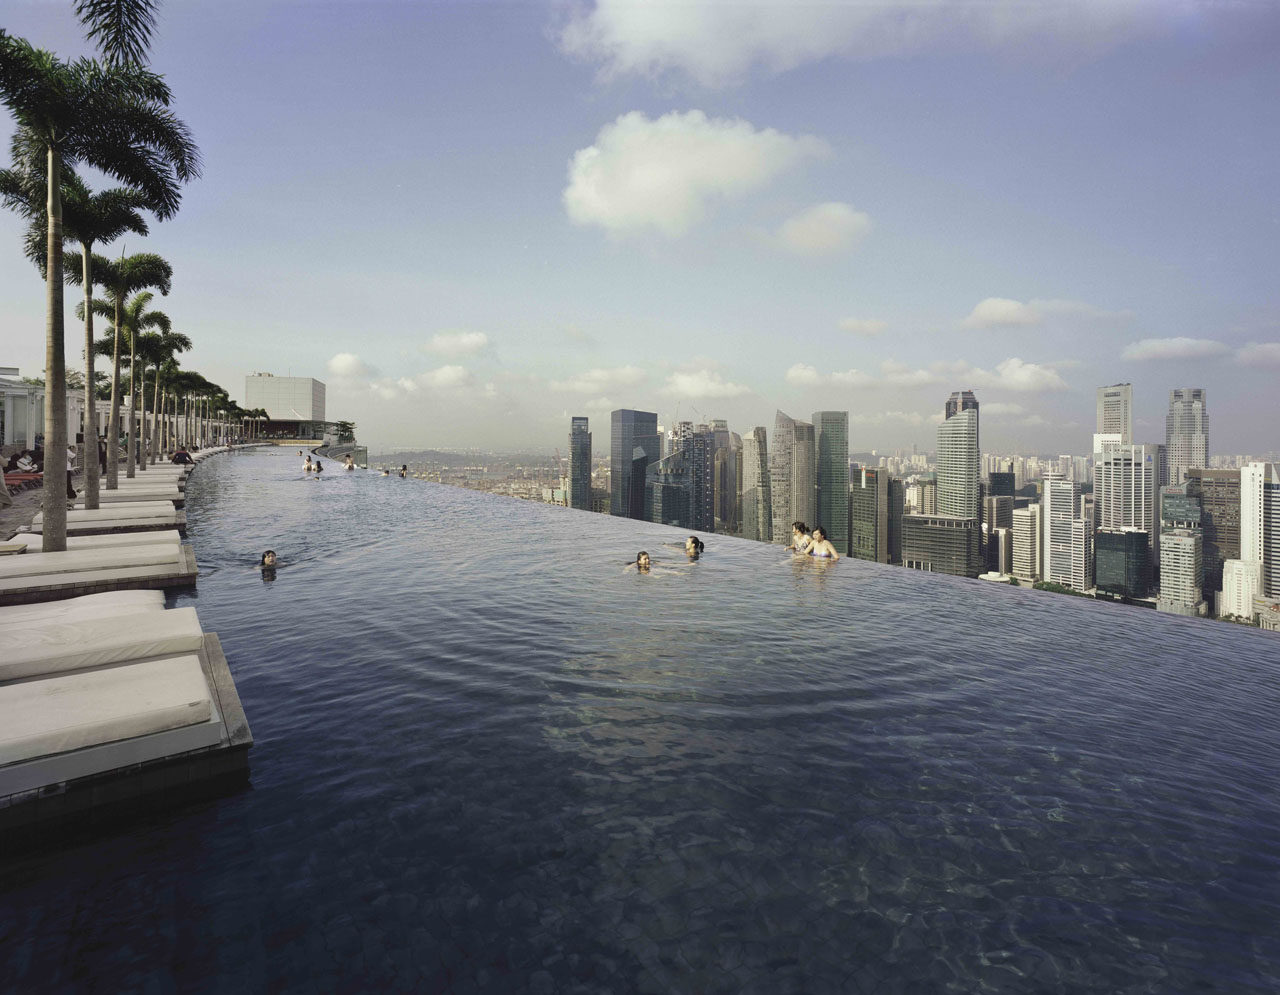 Marina bay sands skypark an iconic singapore destination for Singapour marina bay sands piscine